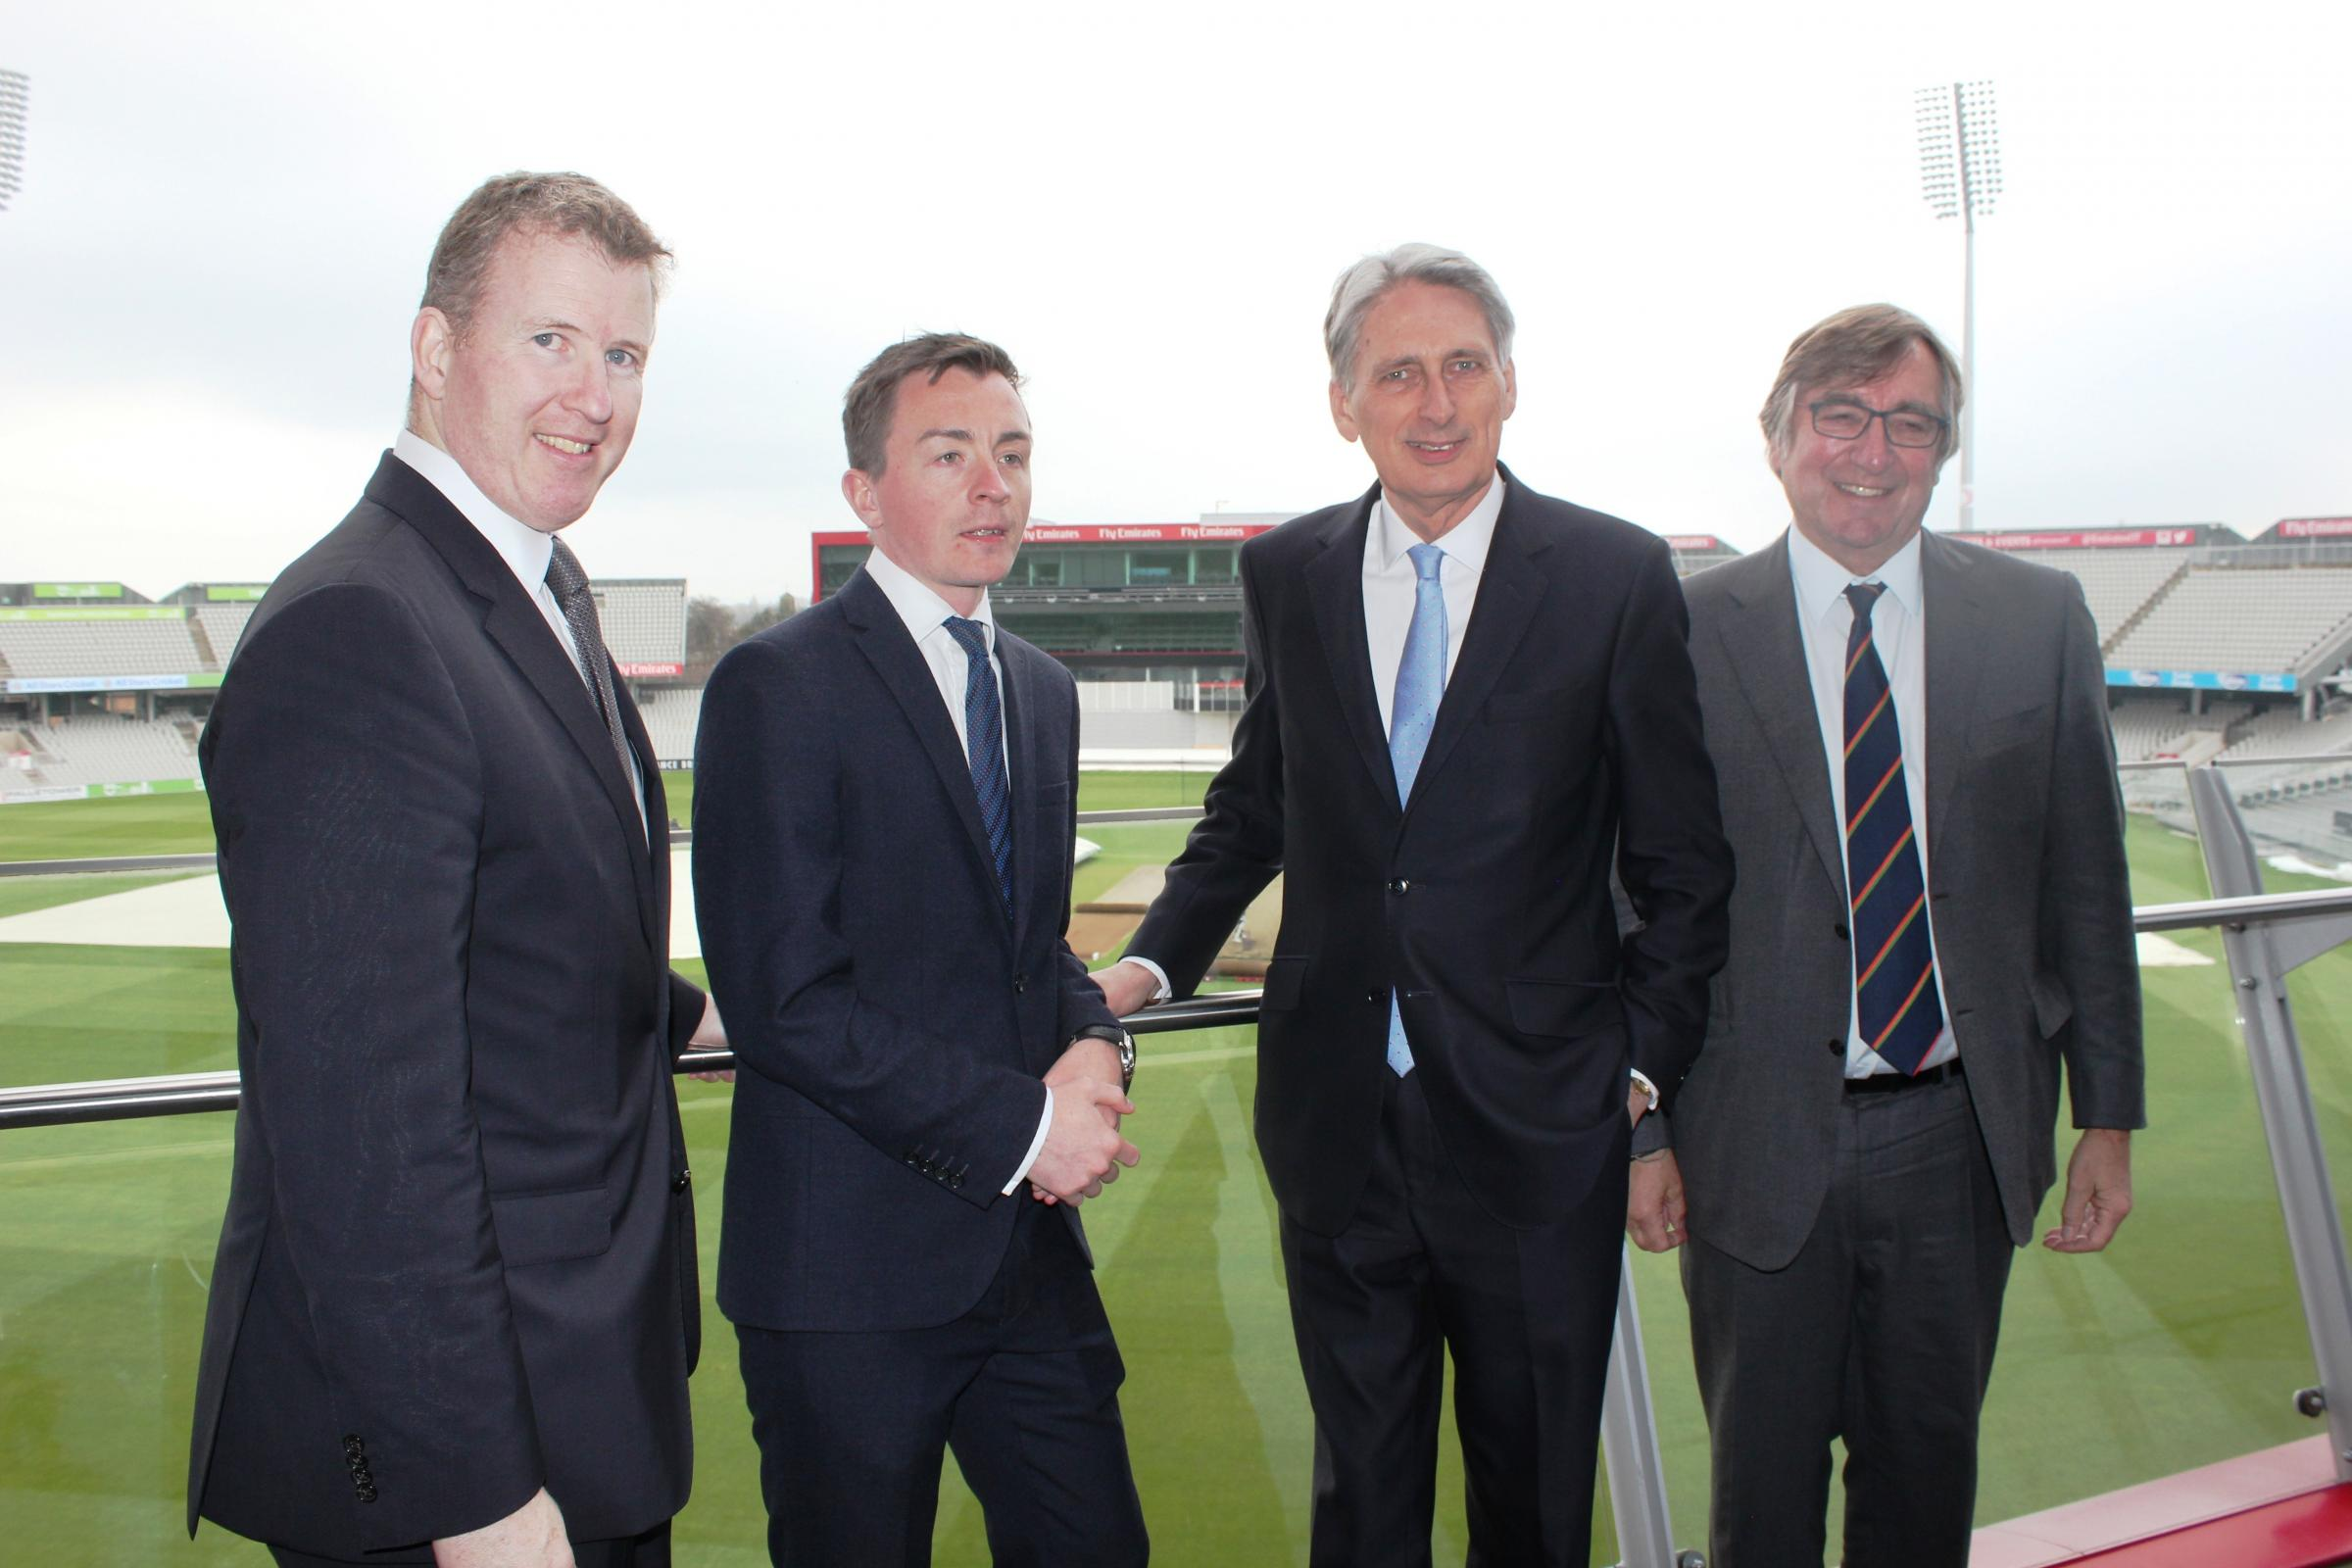 From left, Lancashire Cricket Club CEO Daniel Gidney, Trafford Council Leader Sean Anstee, Chancellor Philip Hammond and LCC chairman David Hodgkiss